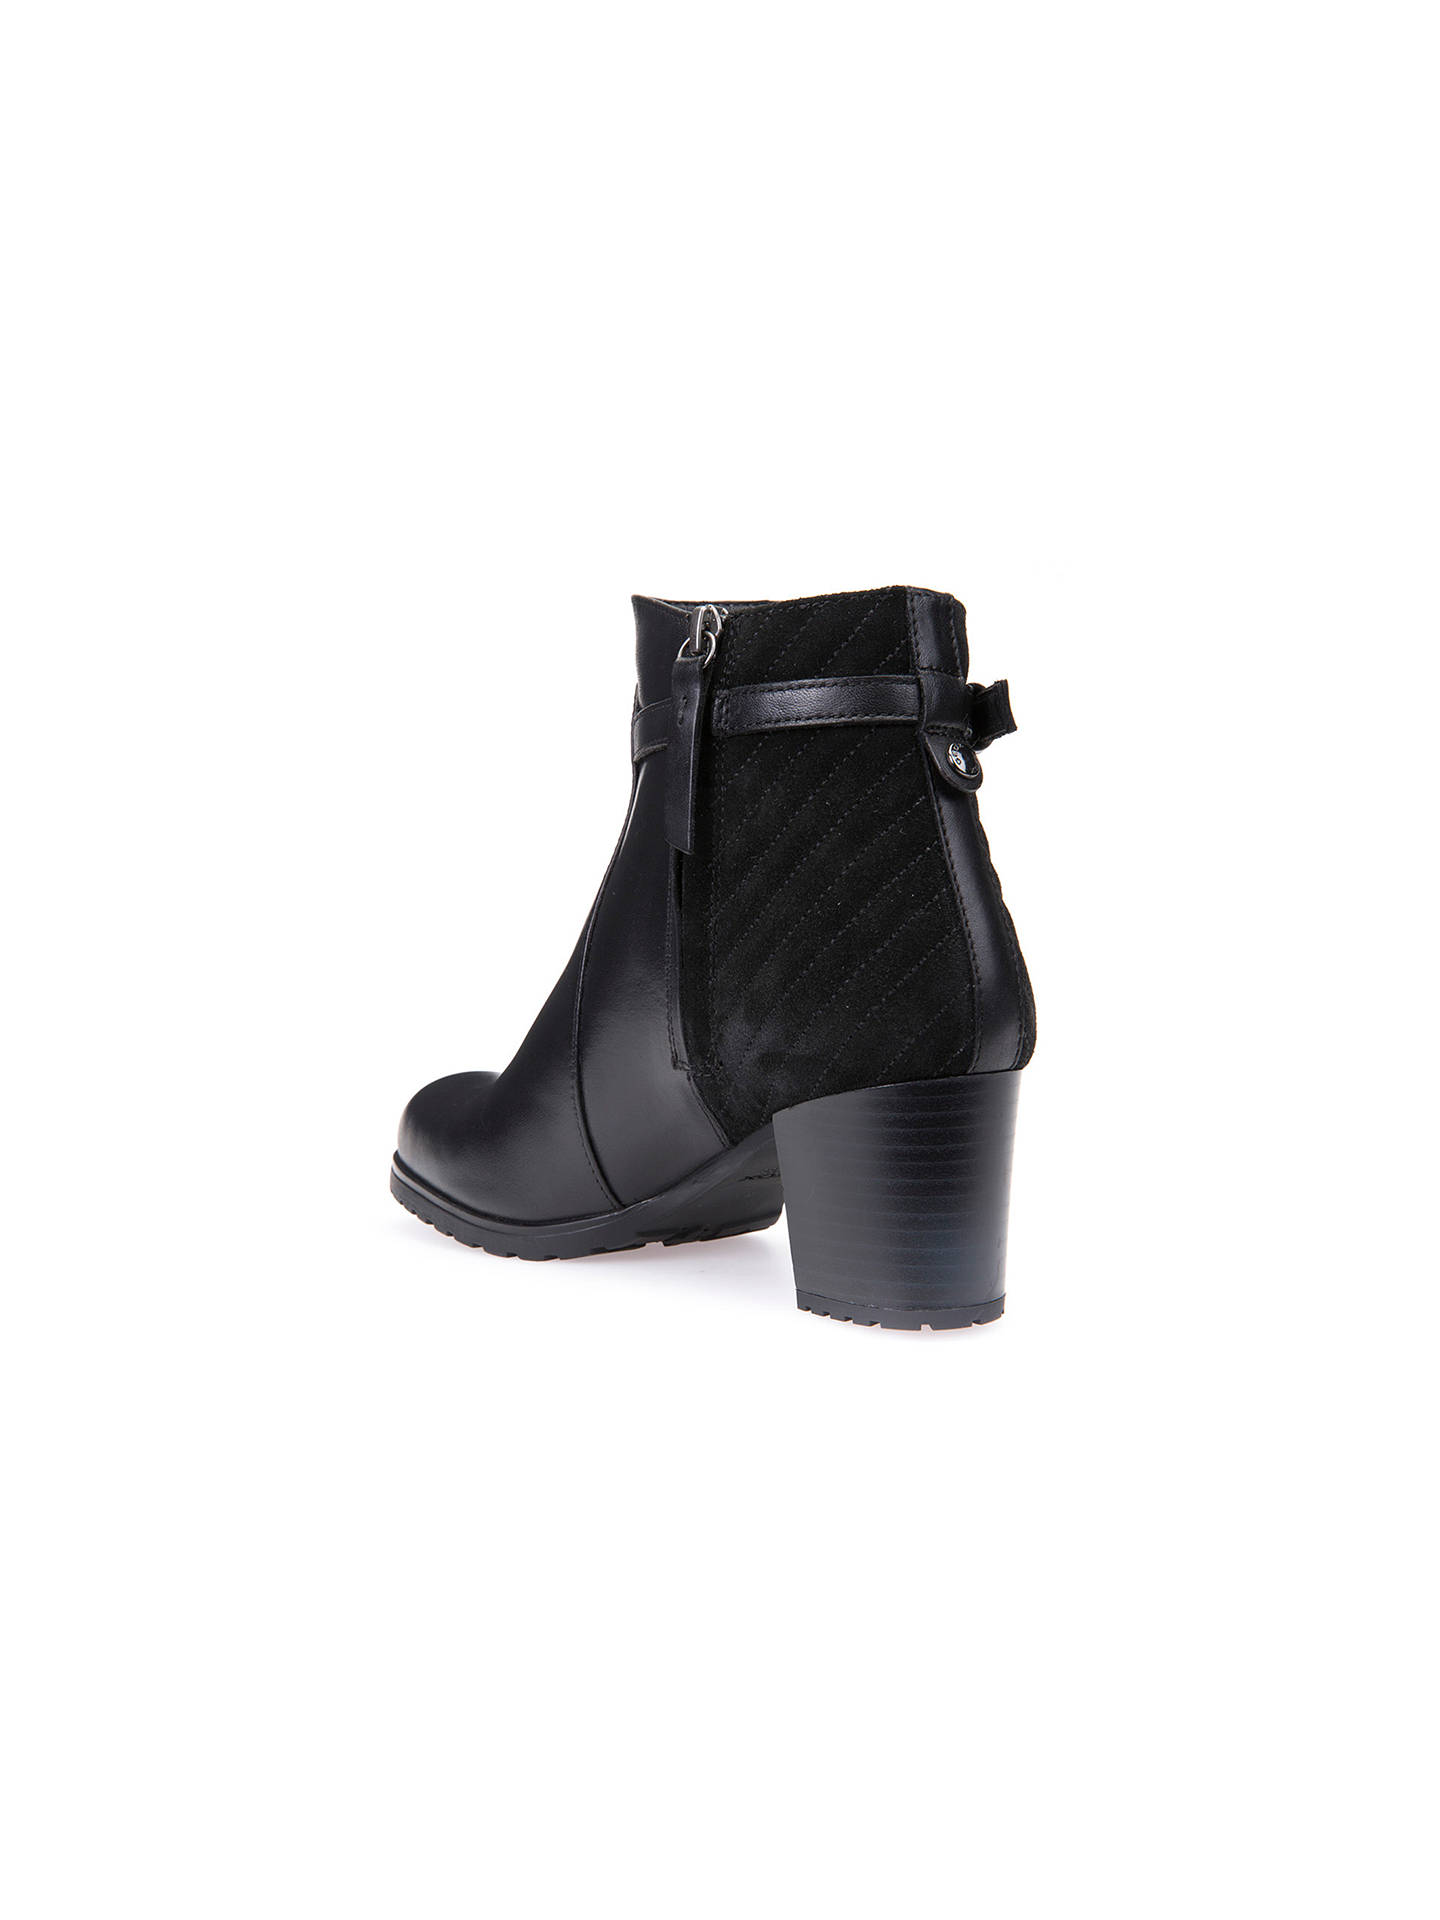 43e730742c1 ... Buy Geox Lise Amphibiox Waterproof Ankle Boots, Black, 3 Online at  johnlewis.com ...